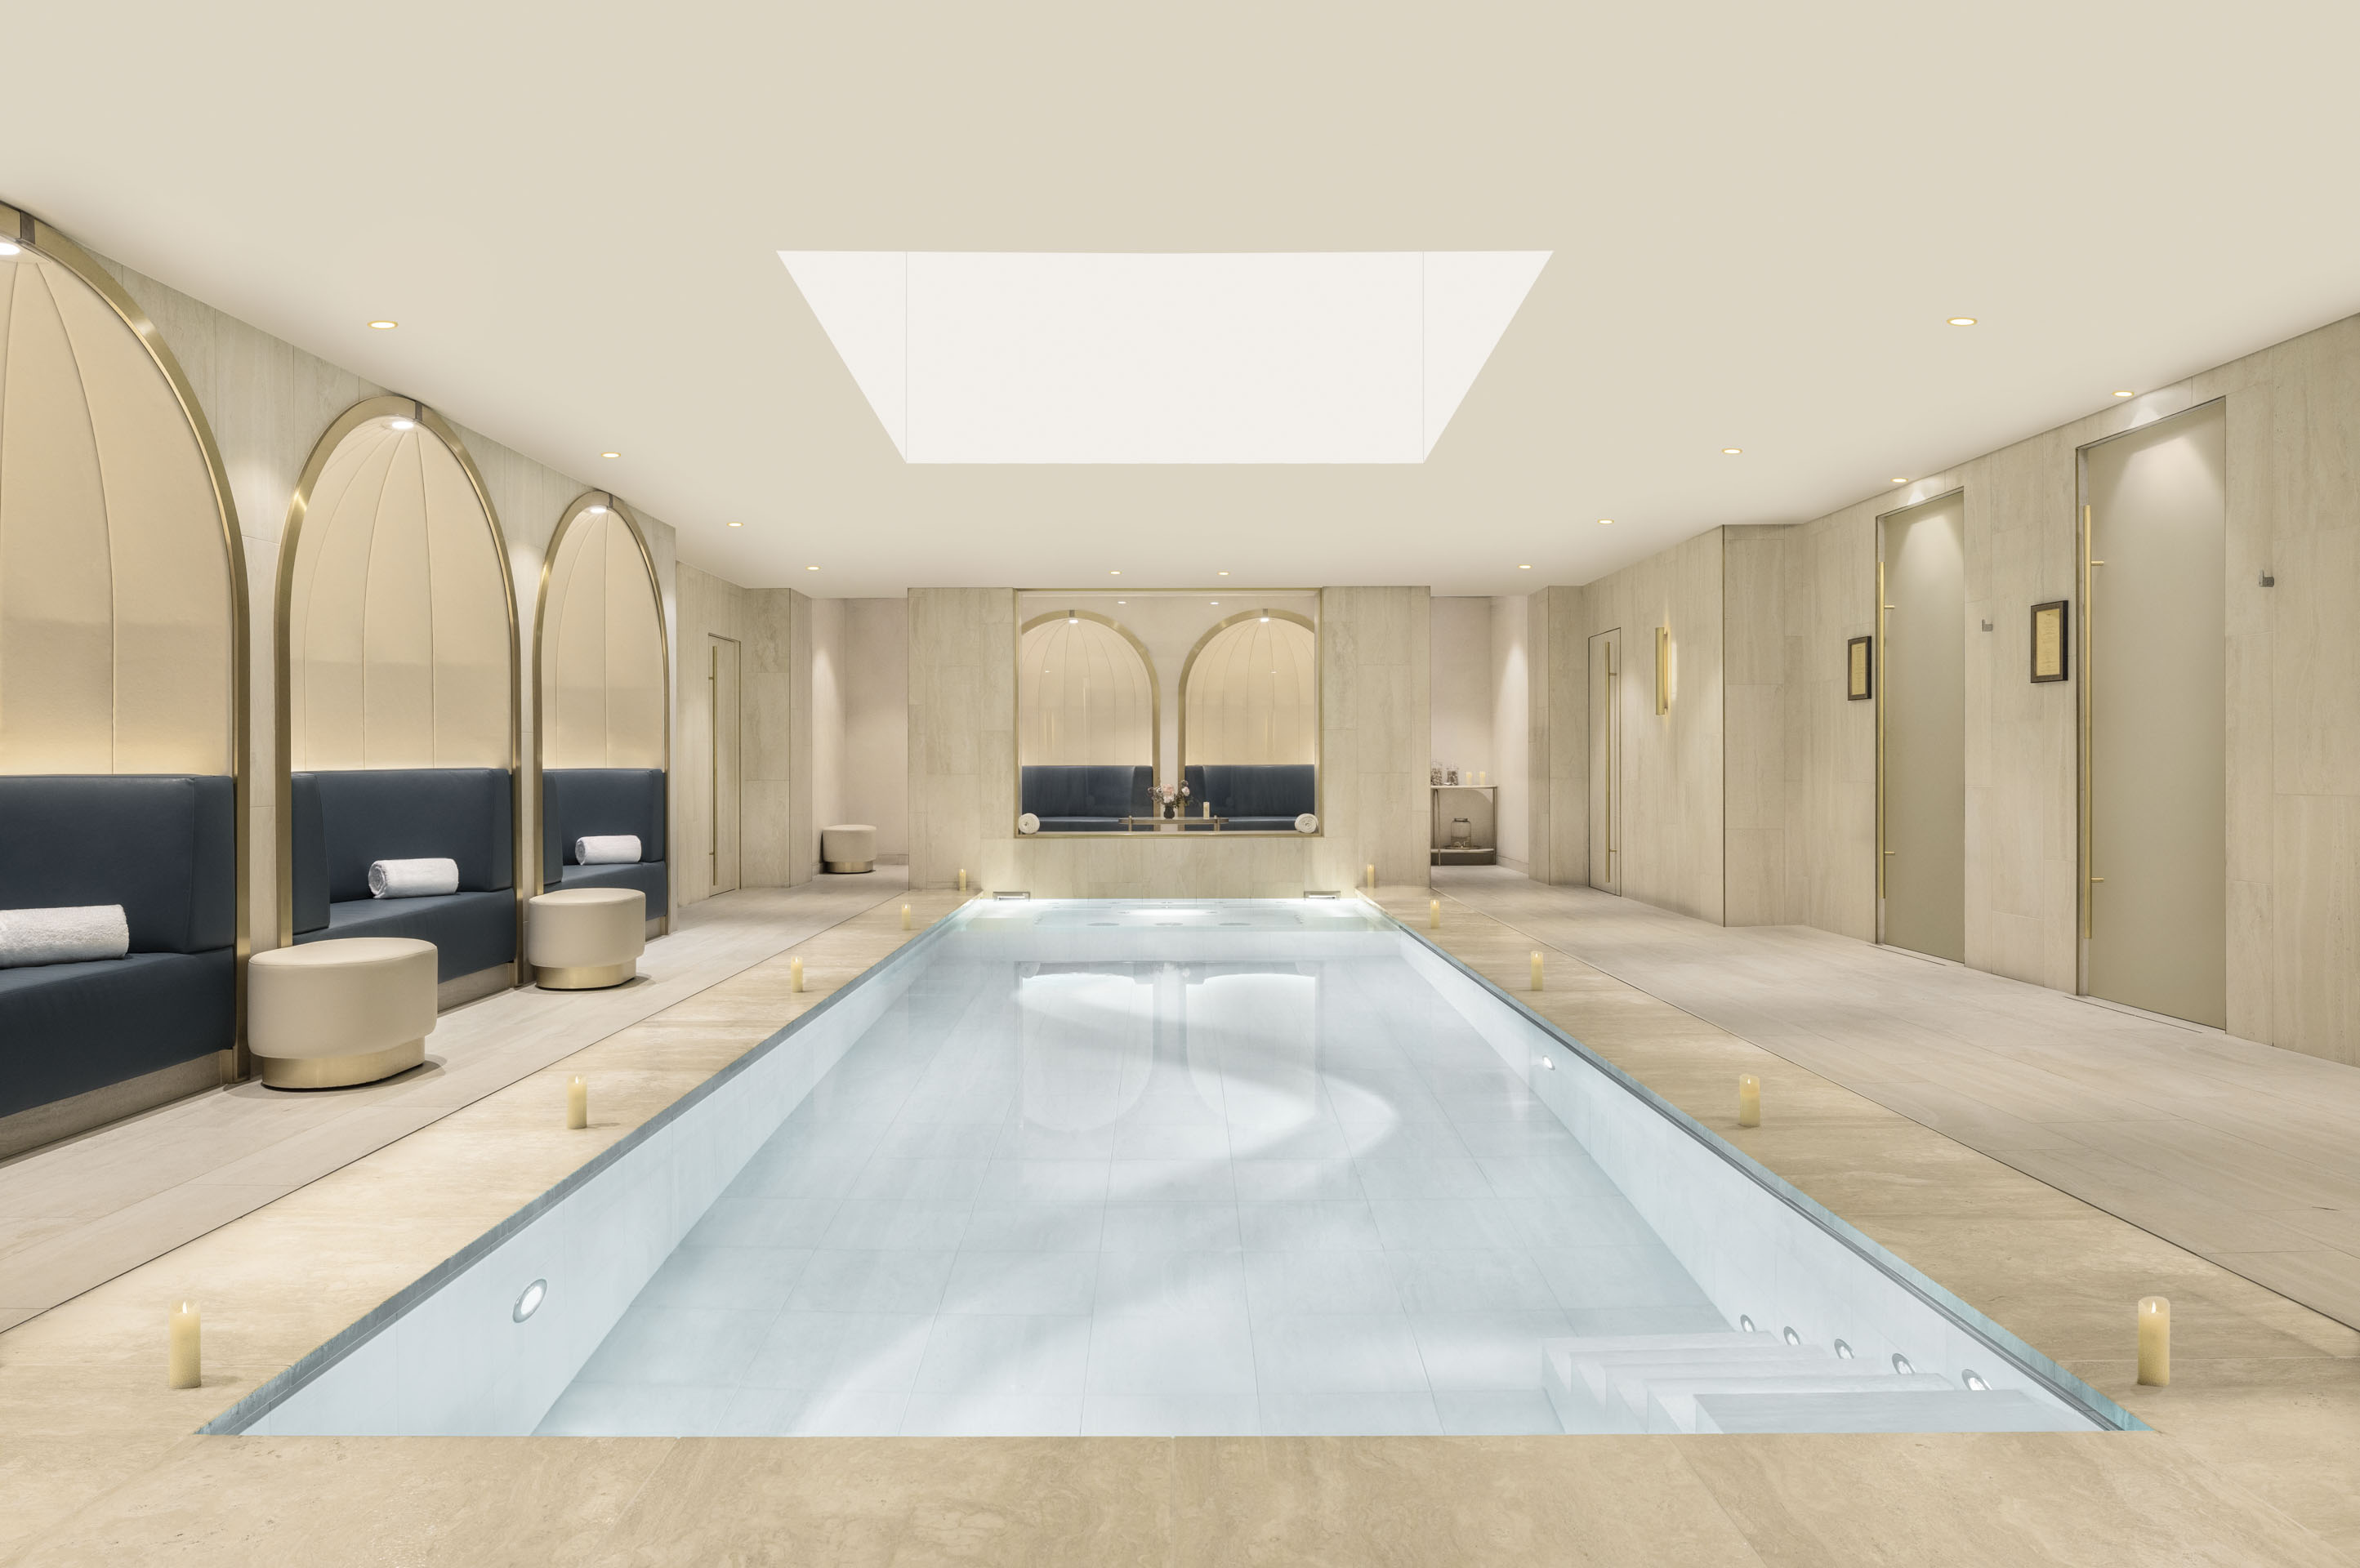 Maison Albar Hotels Le Vendome - Spa Vendome by Carita